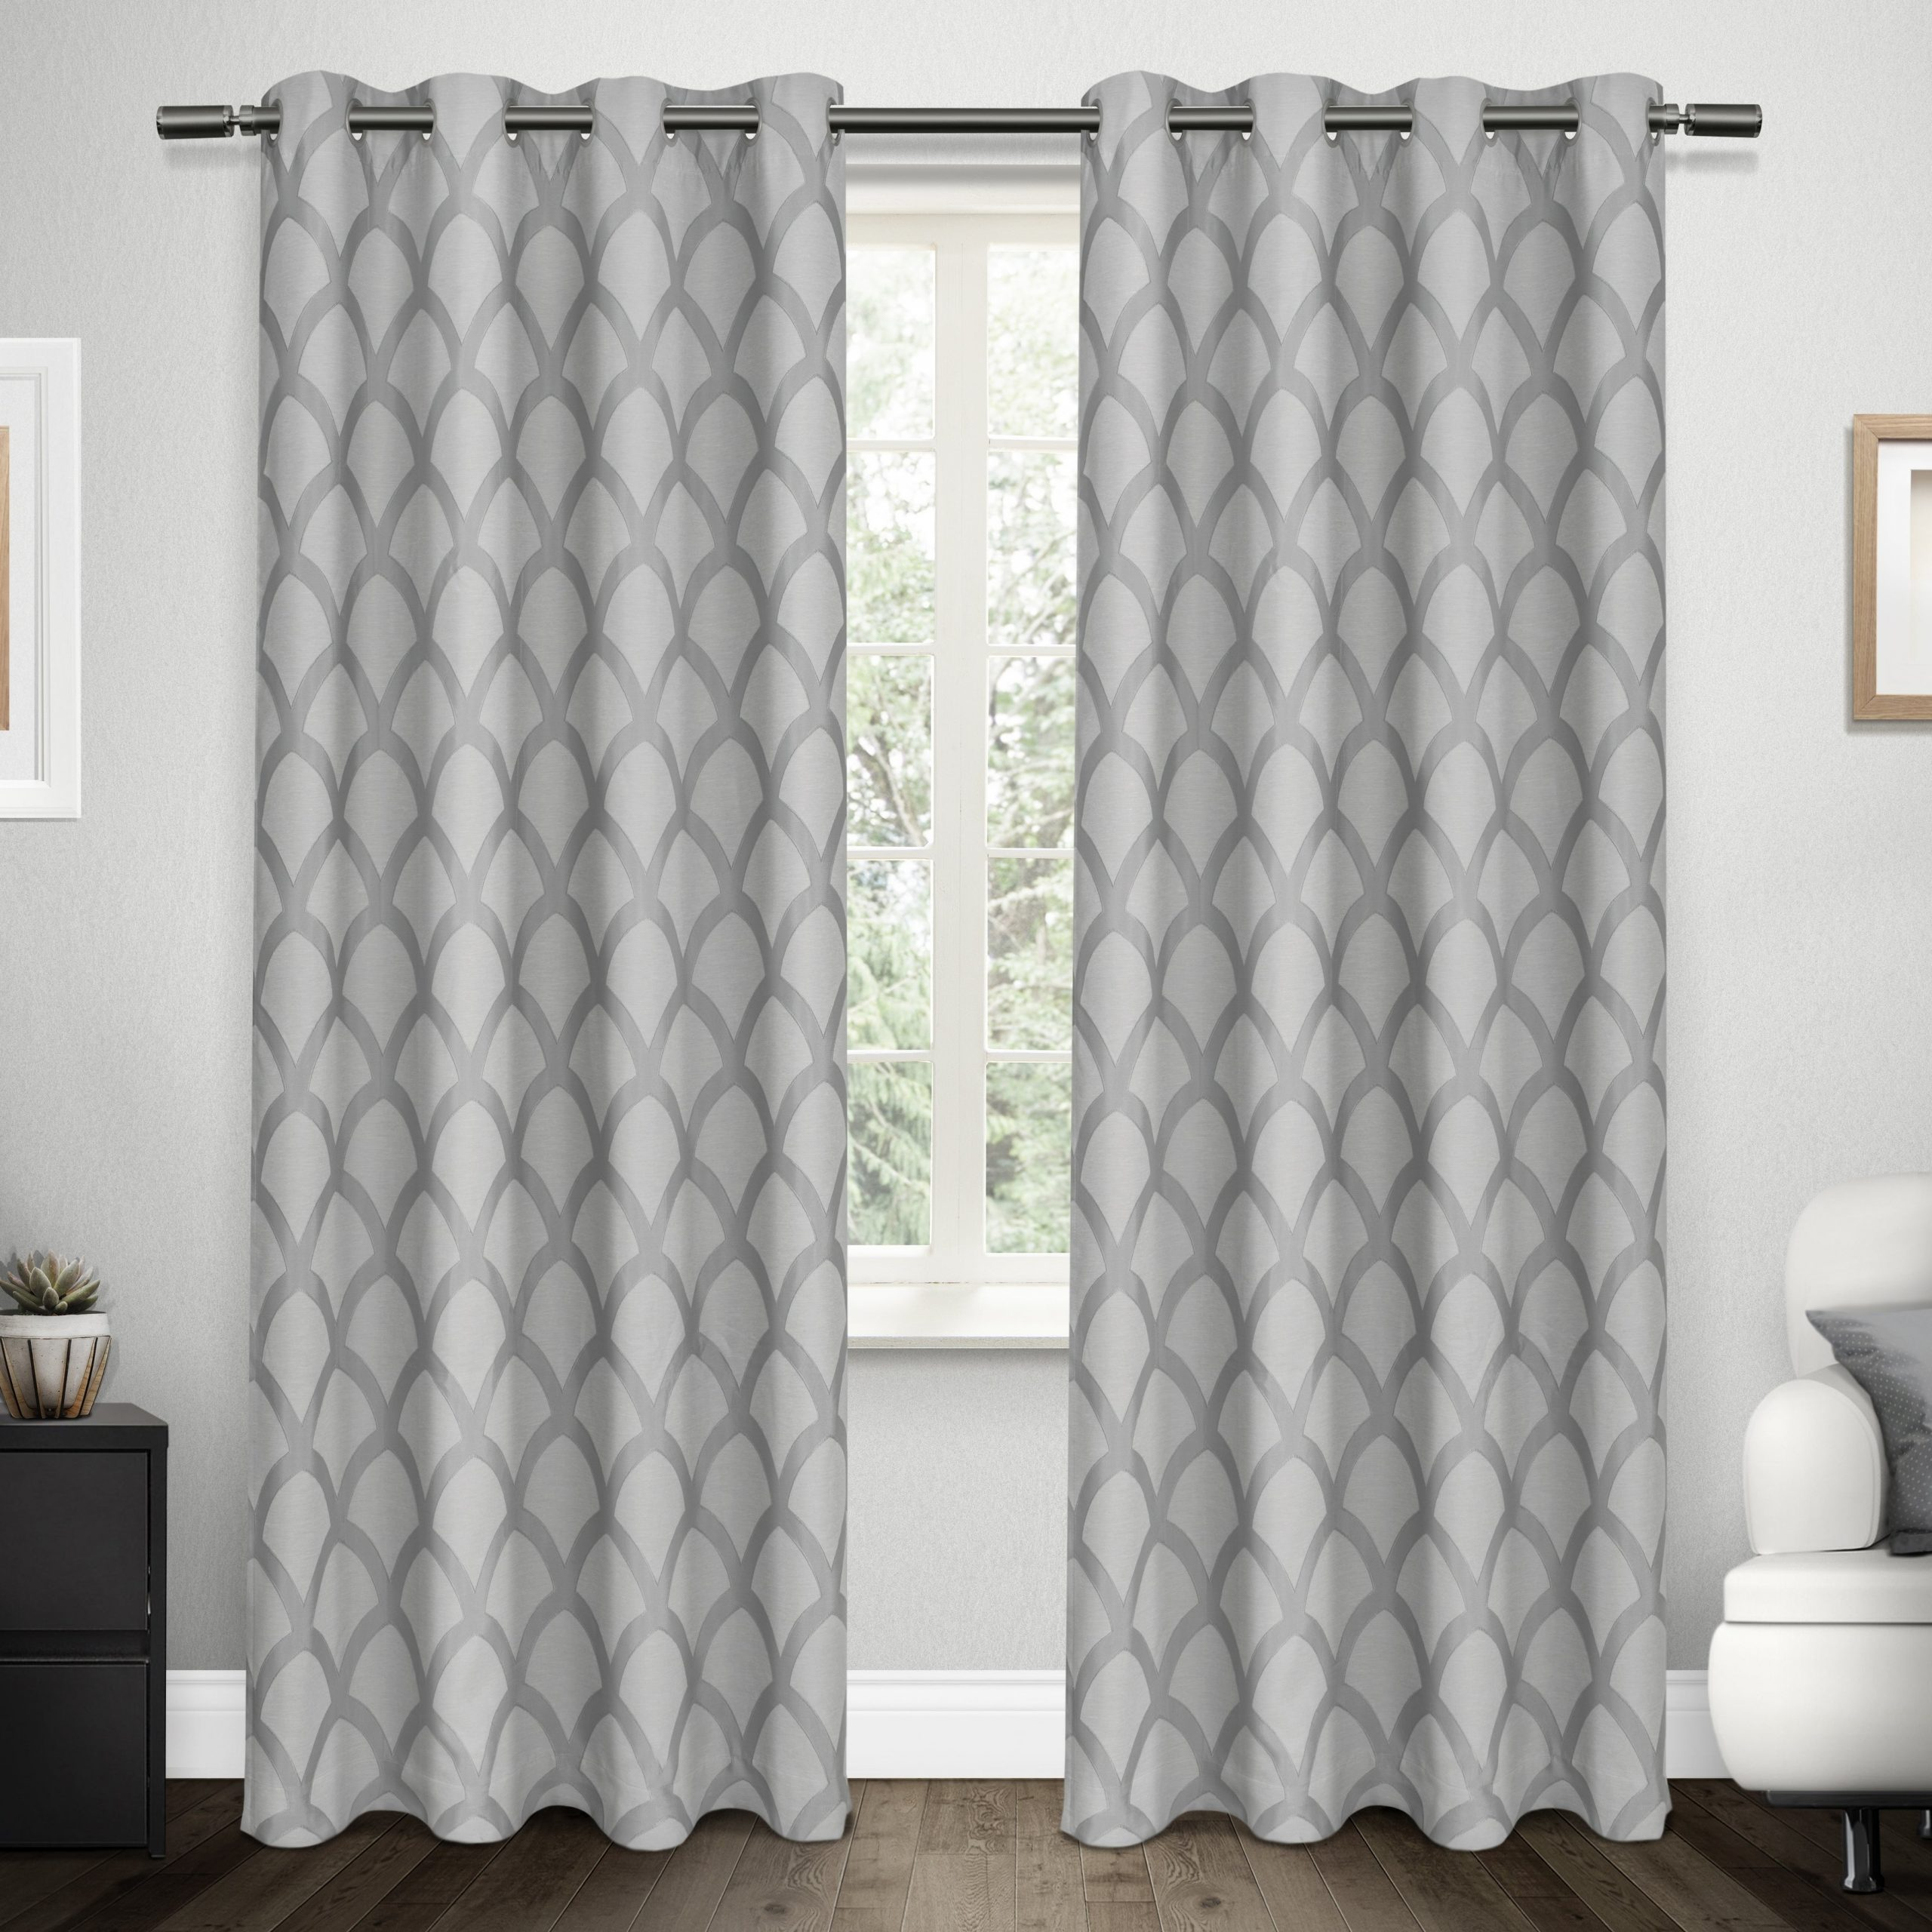 Ati Home Electra Thermal Woven Blackout Grommet Top Curtain Panel Pair Inside Widely Used Easton Thermal Woven Blackout Grommet Top Curtain Panel Pairs (View 4 of 20)